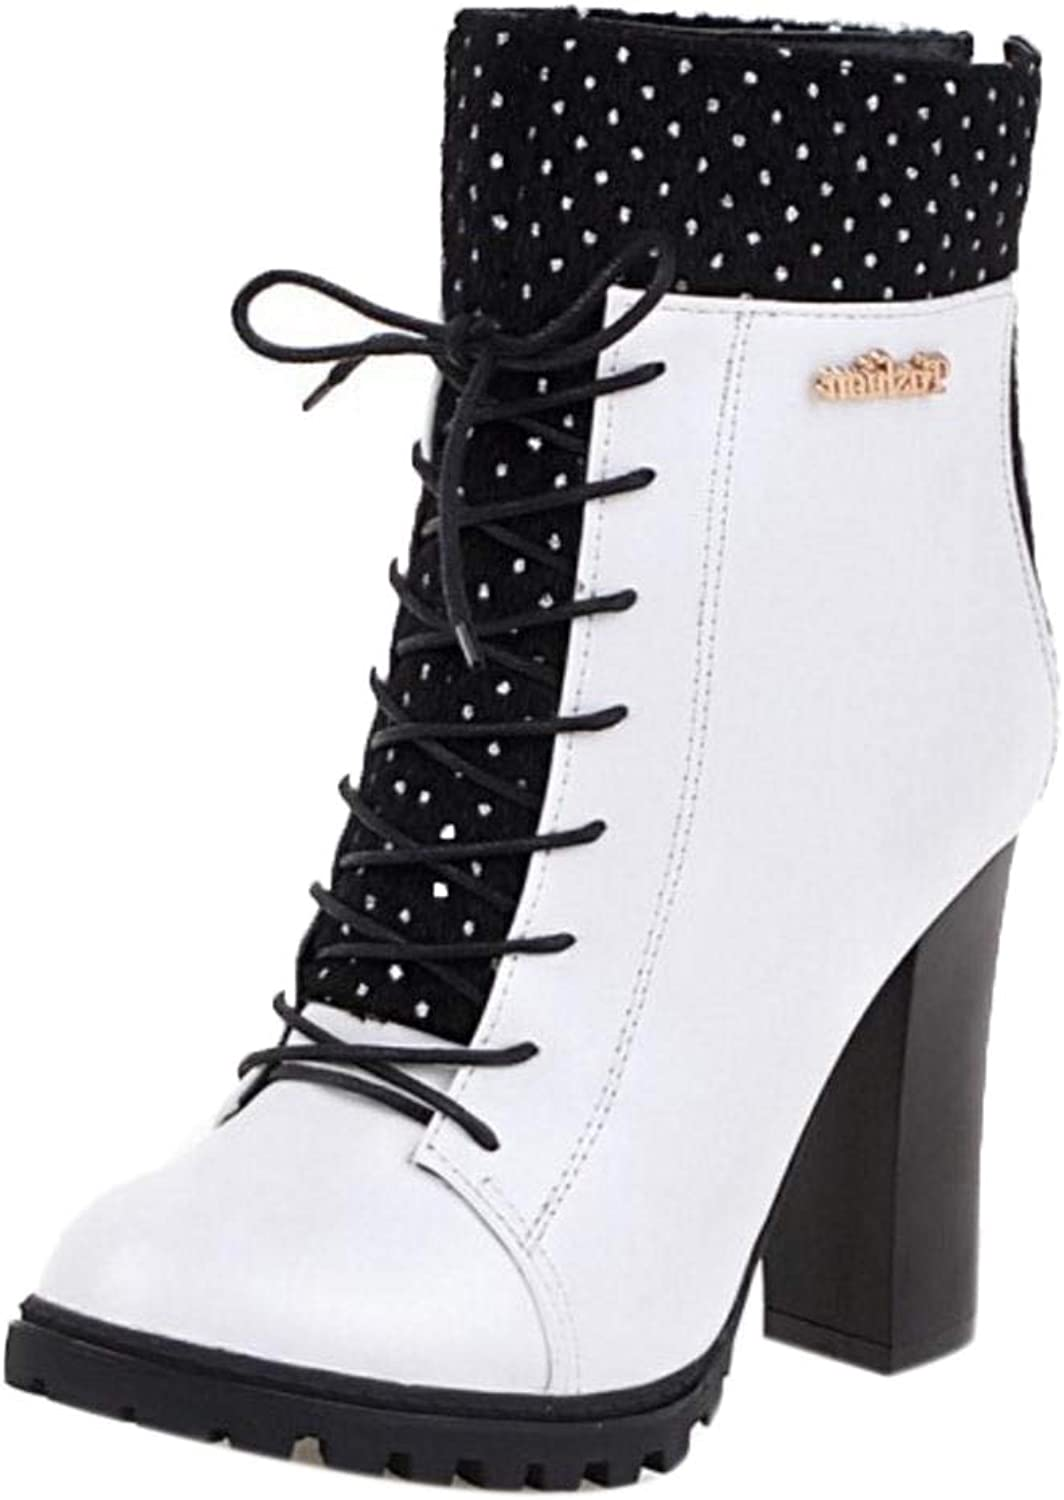 AicciAizzi Women High Heel Ankle Boots Lace